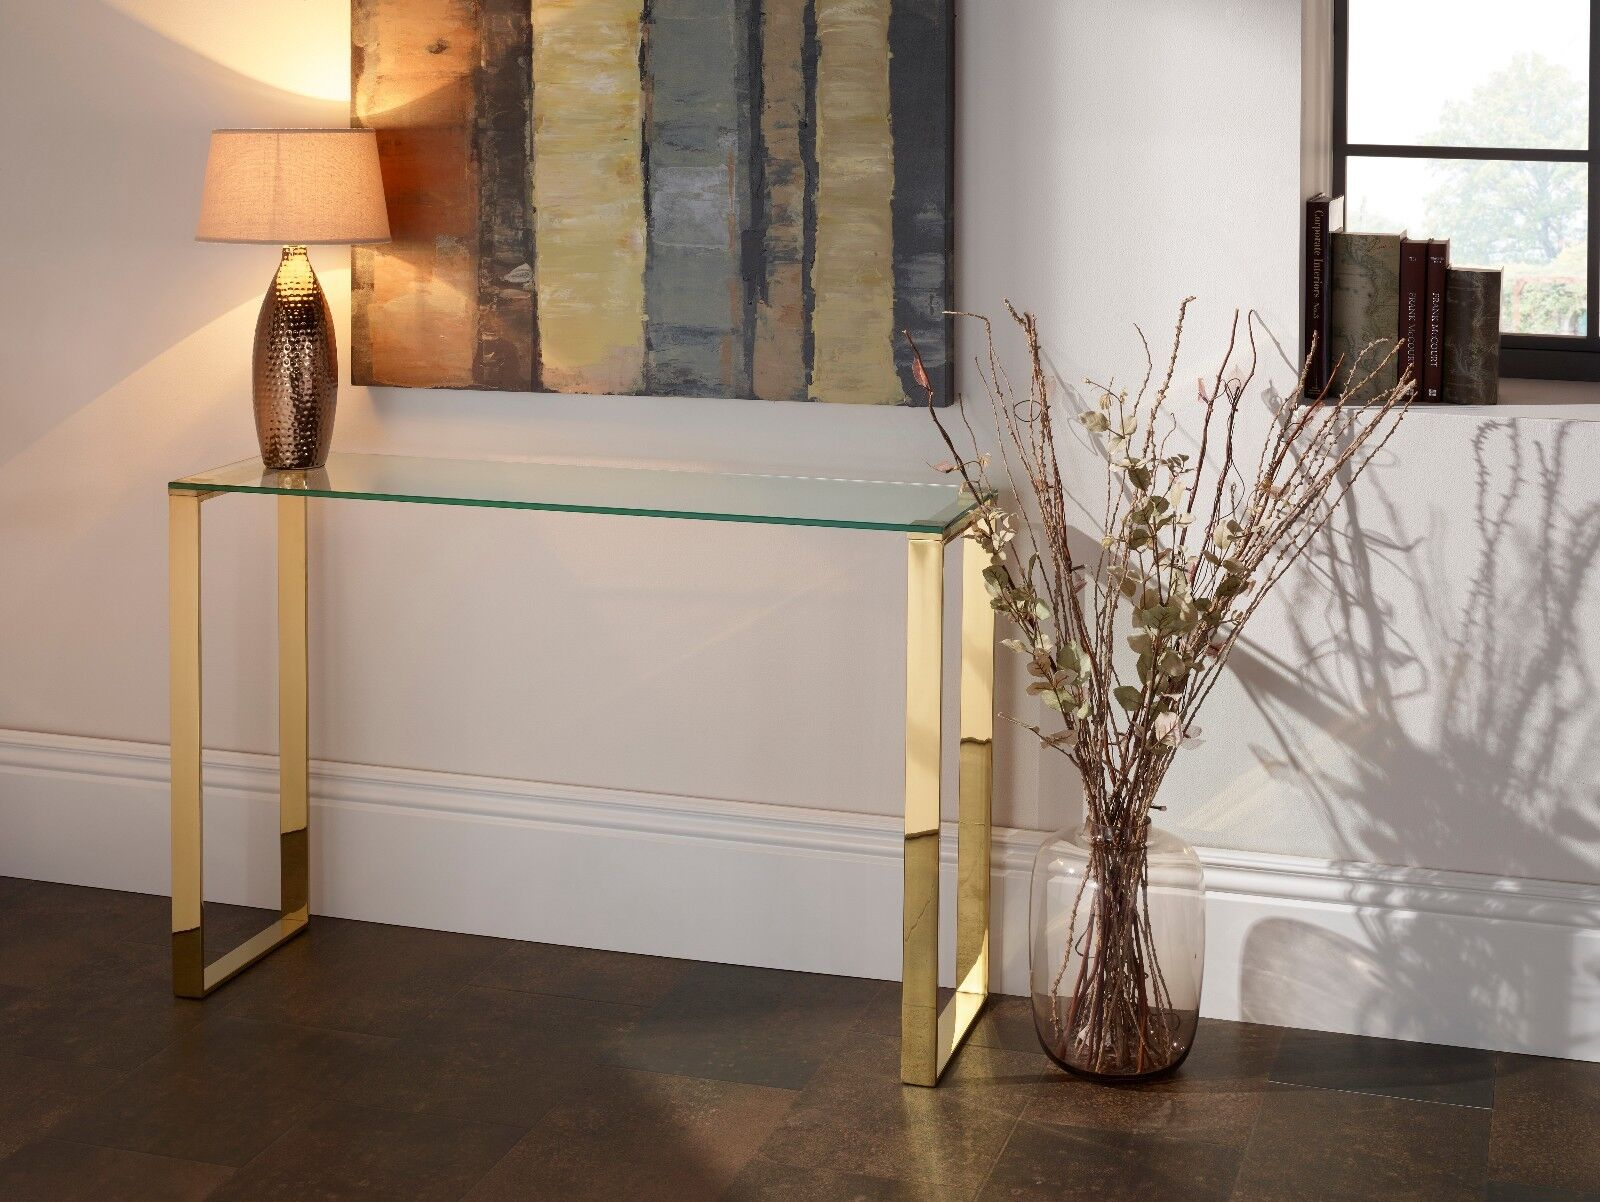 Picture of: Home Furniture Diy Glass Console Table Hallway Furniture Living Room Modern Chrome Metal Frame New Kisetsu System Co Jp